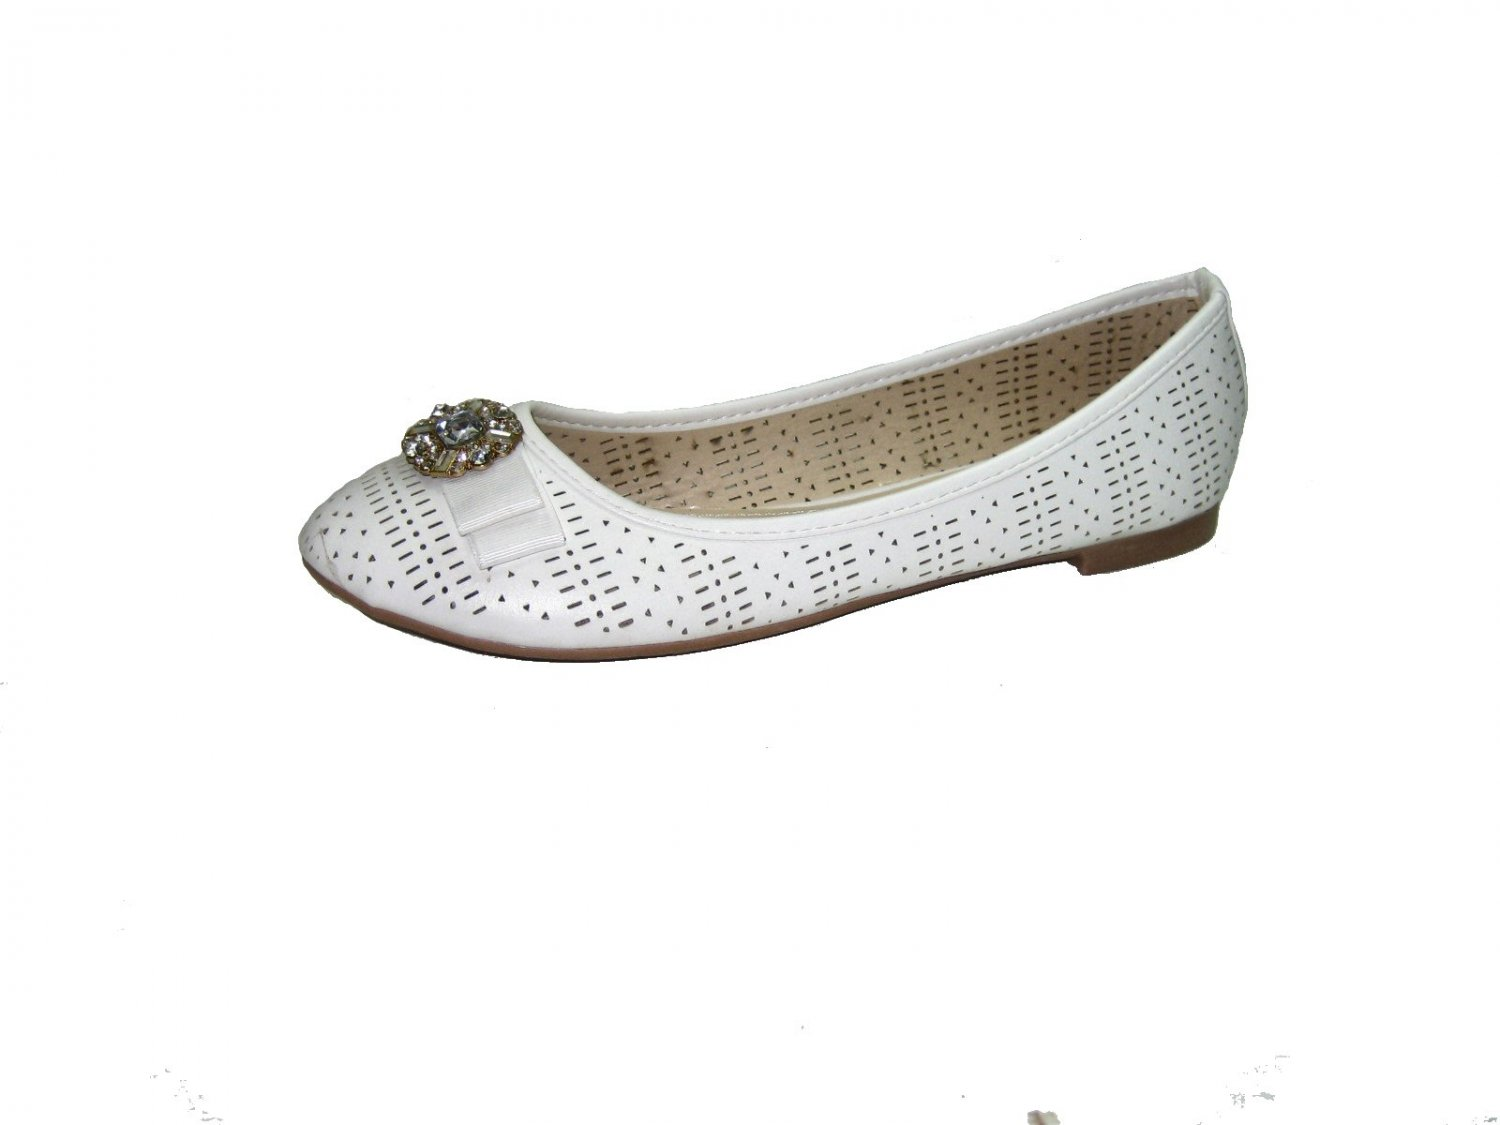 Top Moda SB-25 ballerina flats slip on pumps rhinestone bejeweled bow toe shoes white size 7